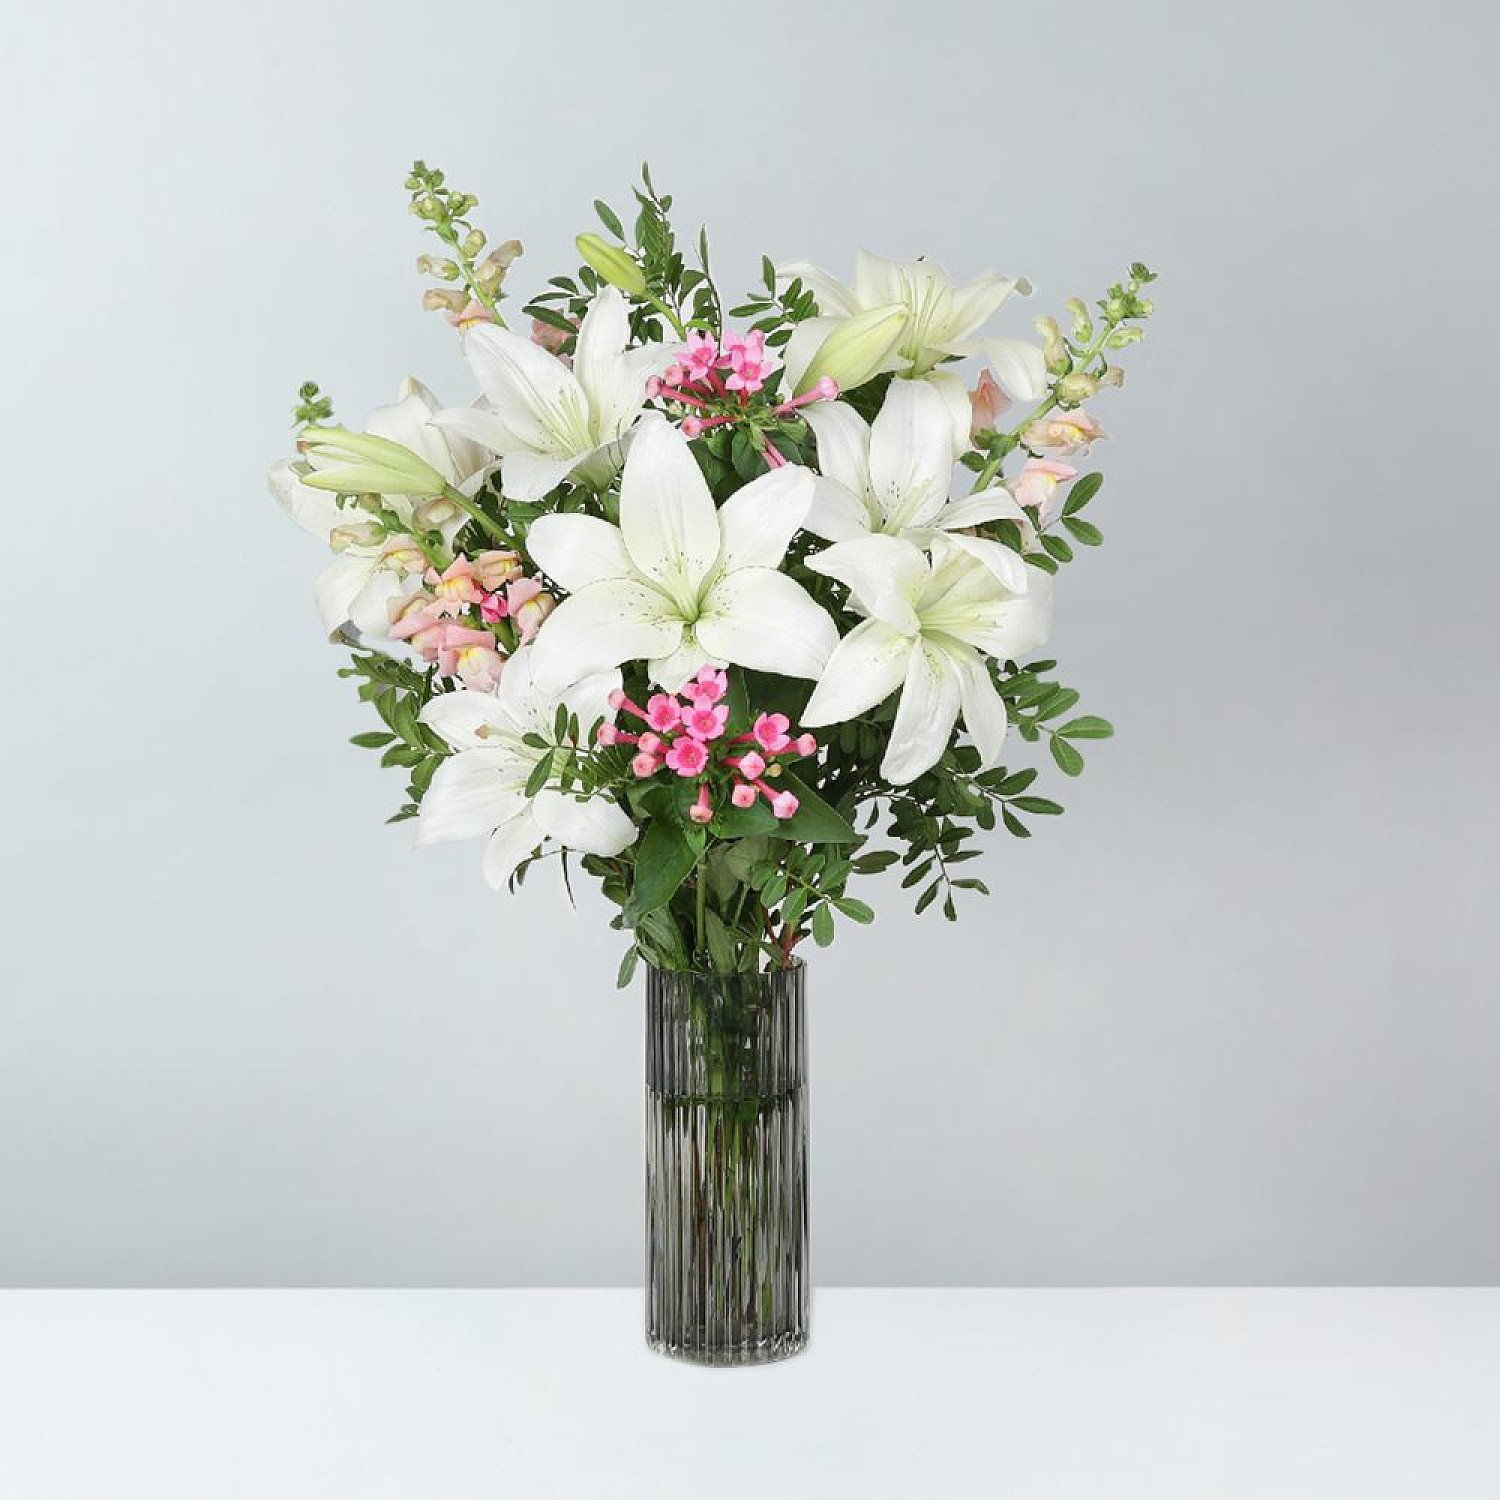 HAND-TIED BOUQUETS BY EXPERT FLORISTS - THE KINDNESS £26.98 + Delivery!